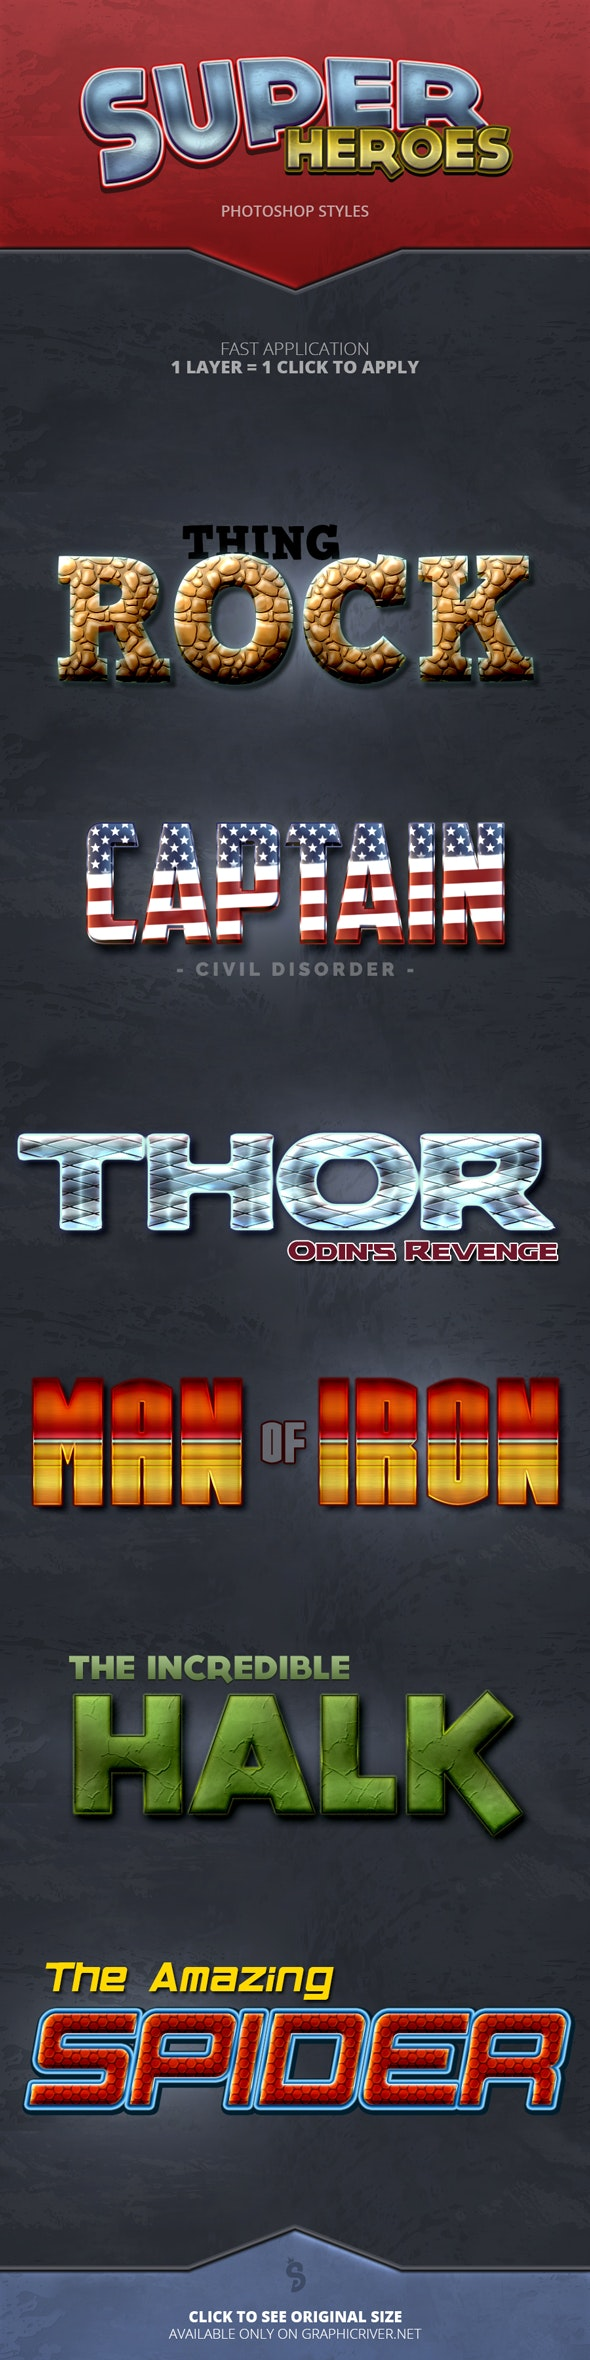 Super Heroes - Photoshop Styles - Text Effects Styles